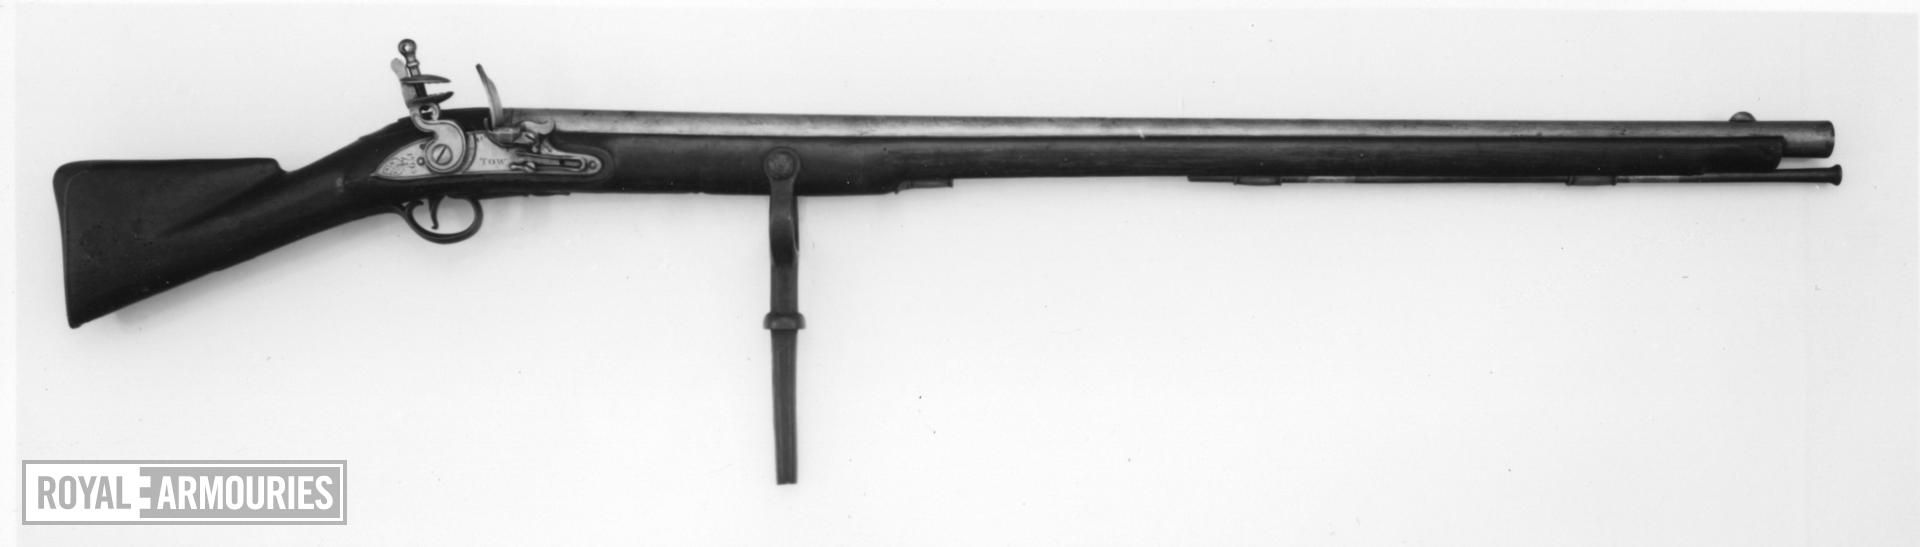 Flintlock wall gun - By Tow